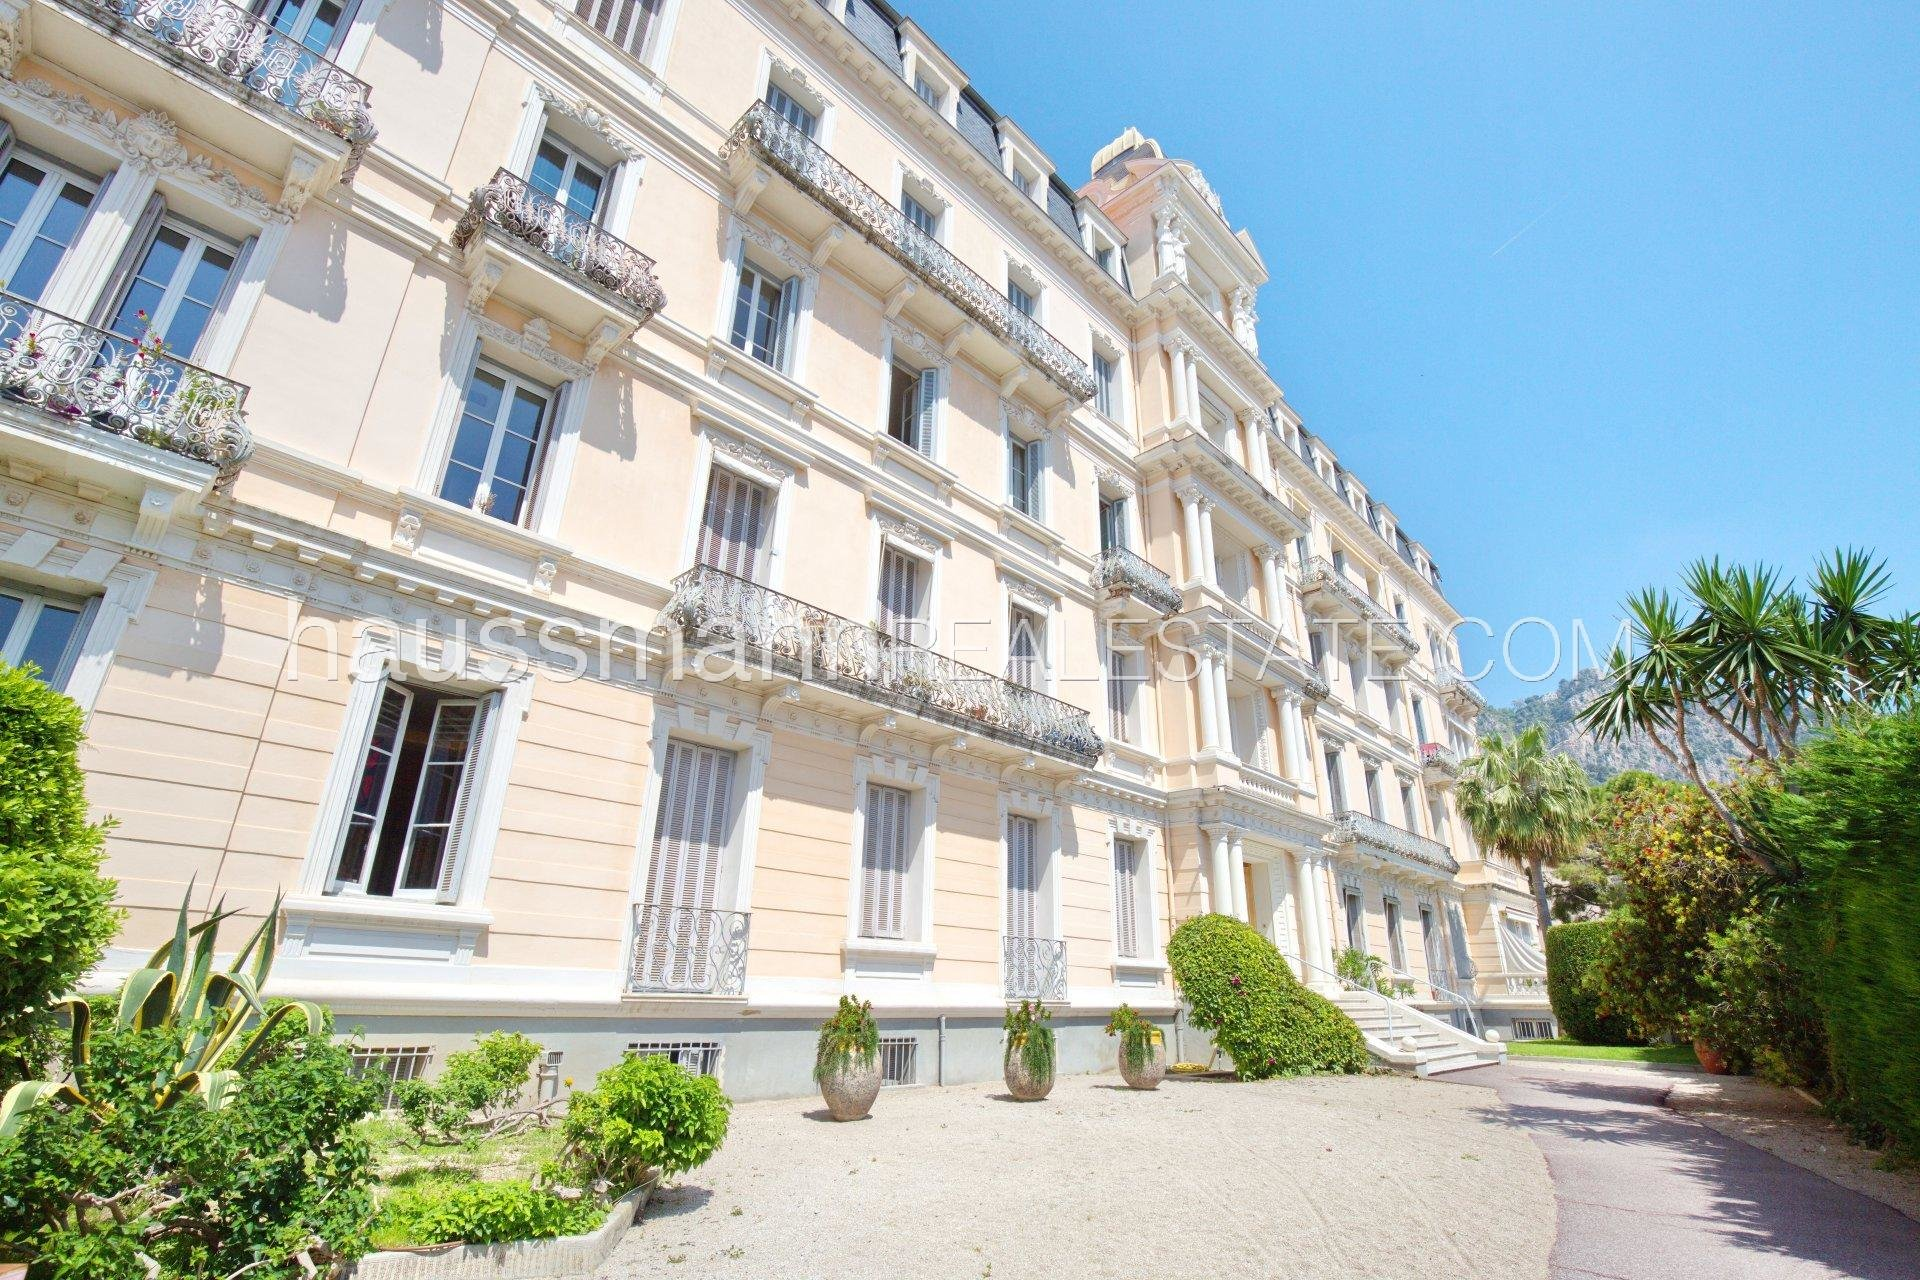 Buying Apartment Beaulieu-sur-Mer 2/3 rooms sea view in Belle Epoque historical residence